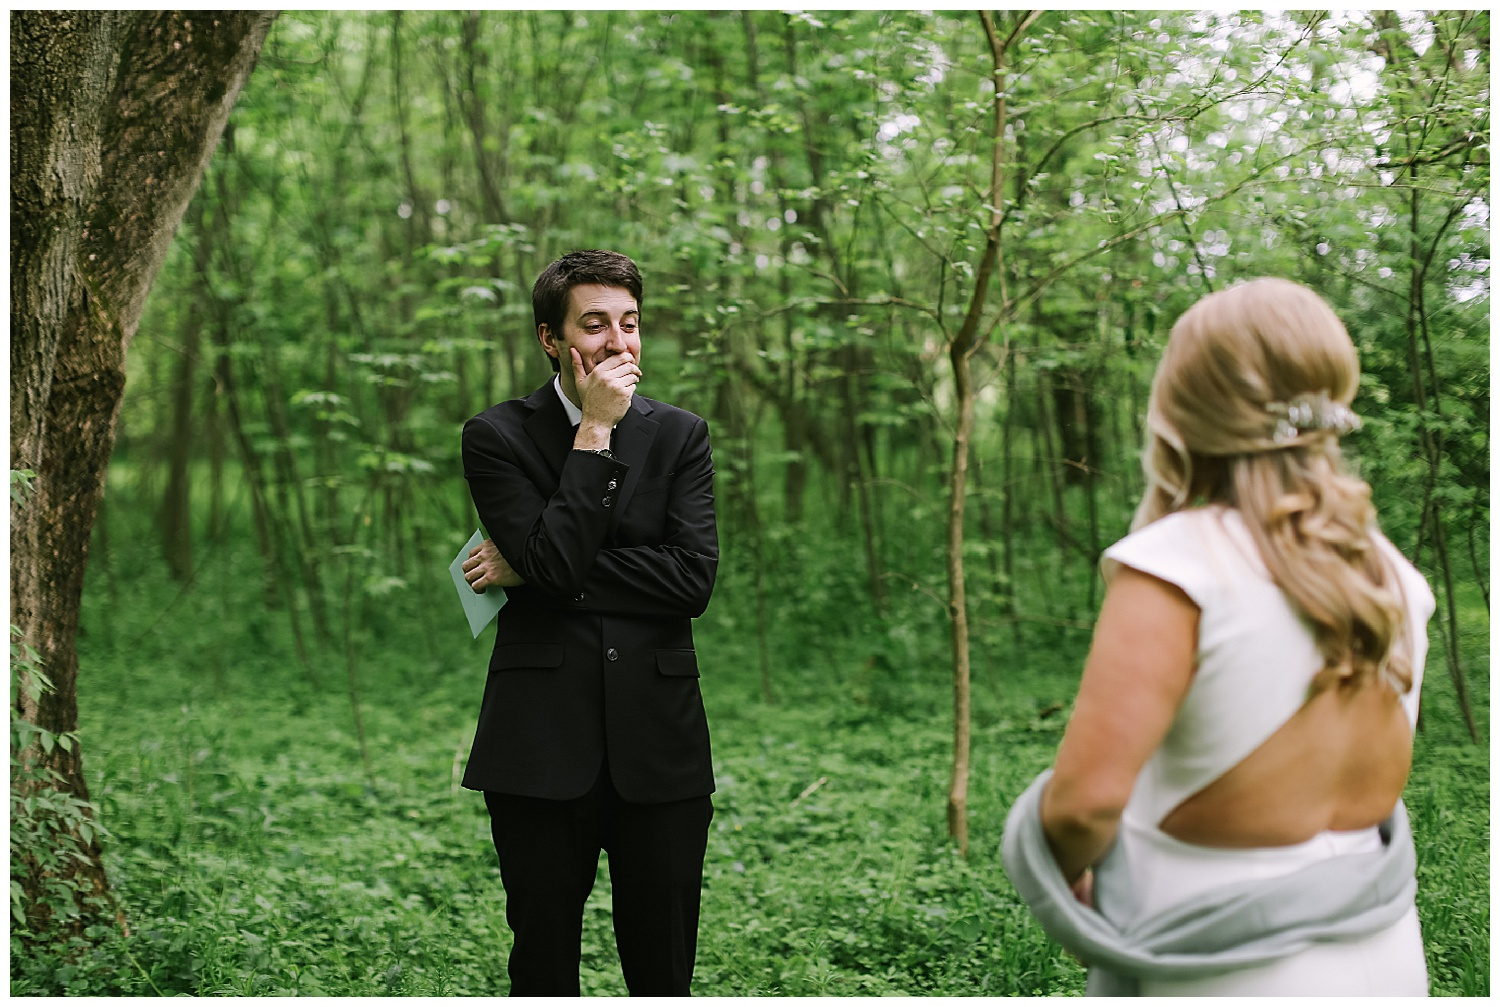 trent.and.kendra.photography.elopement.intimate.wedding-35.jpg